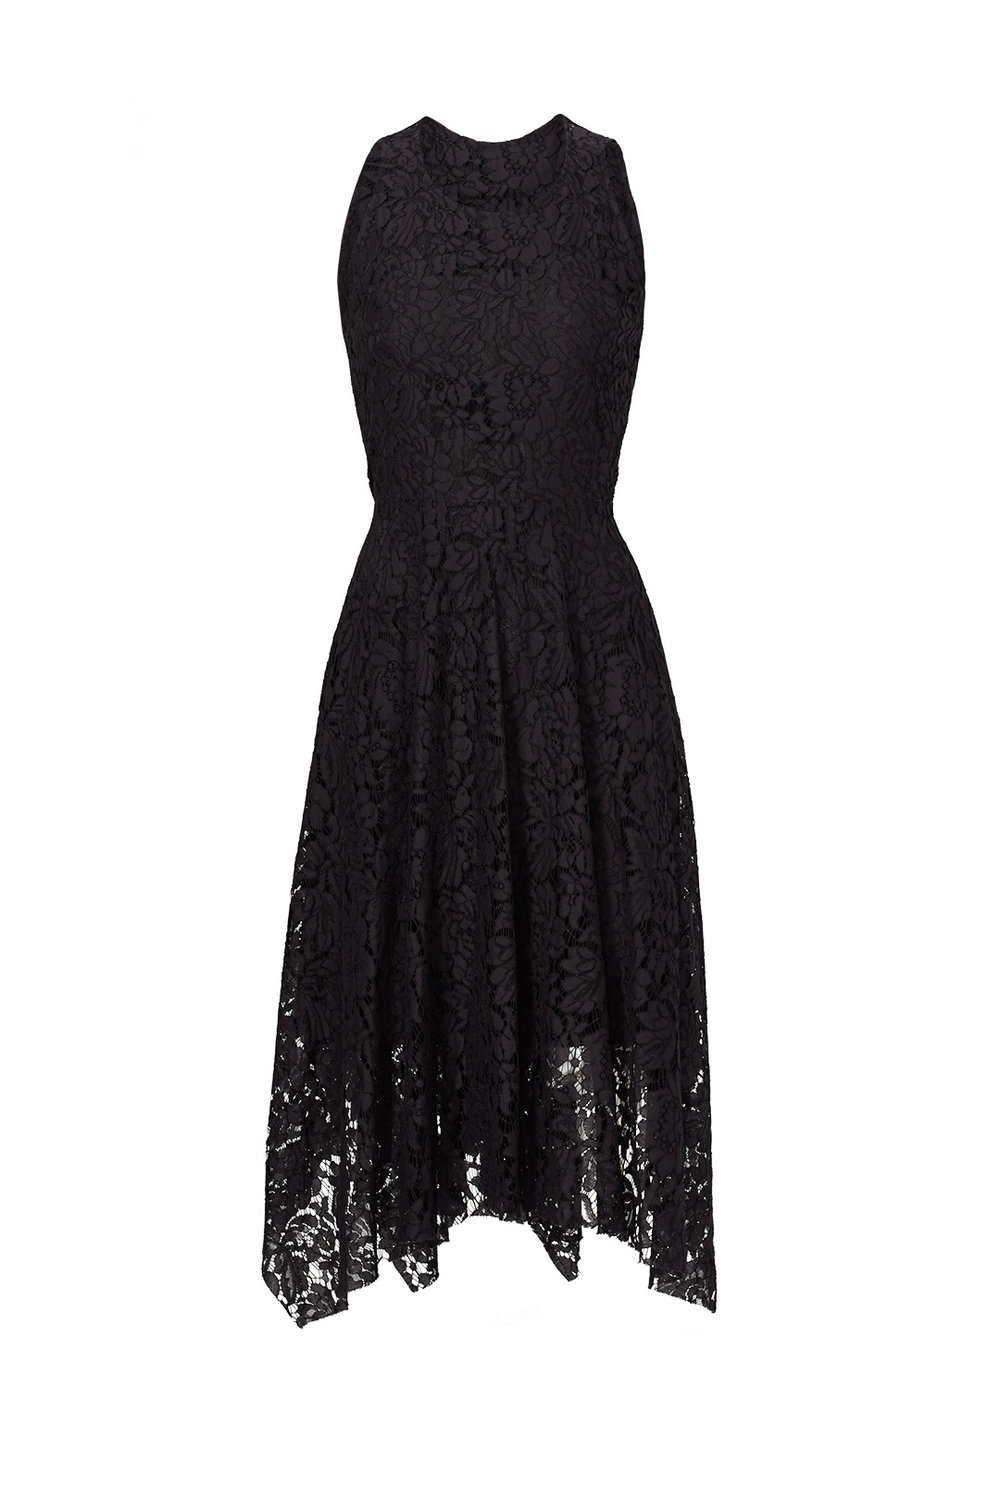 Black lace Handkerchief Hem Dress.jpg